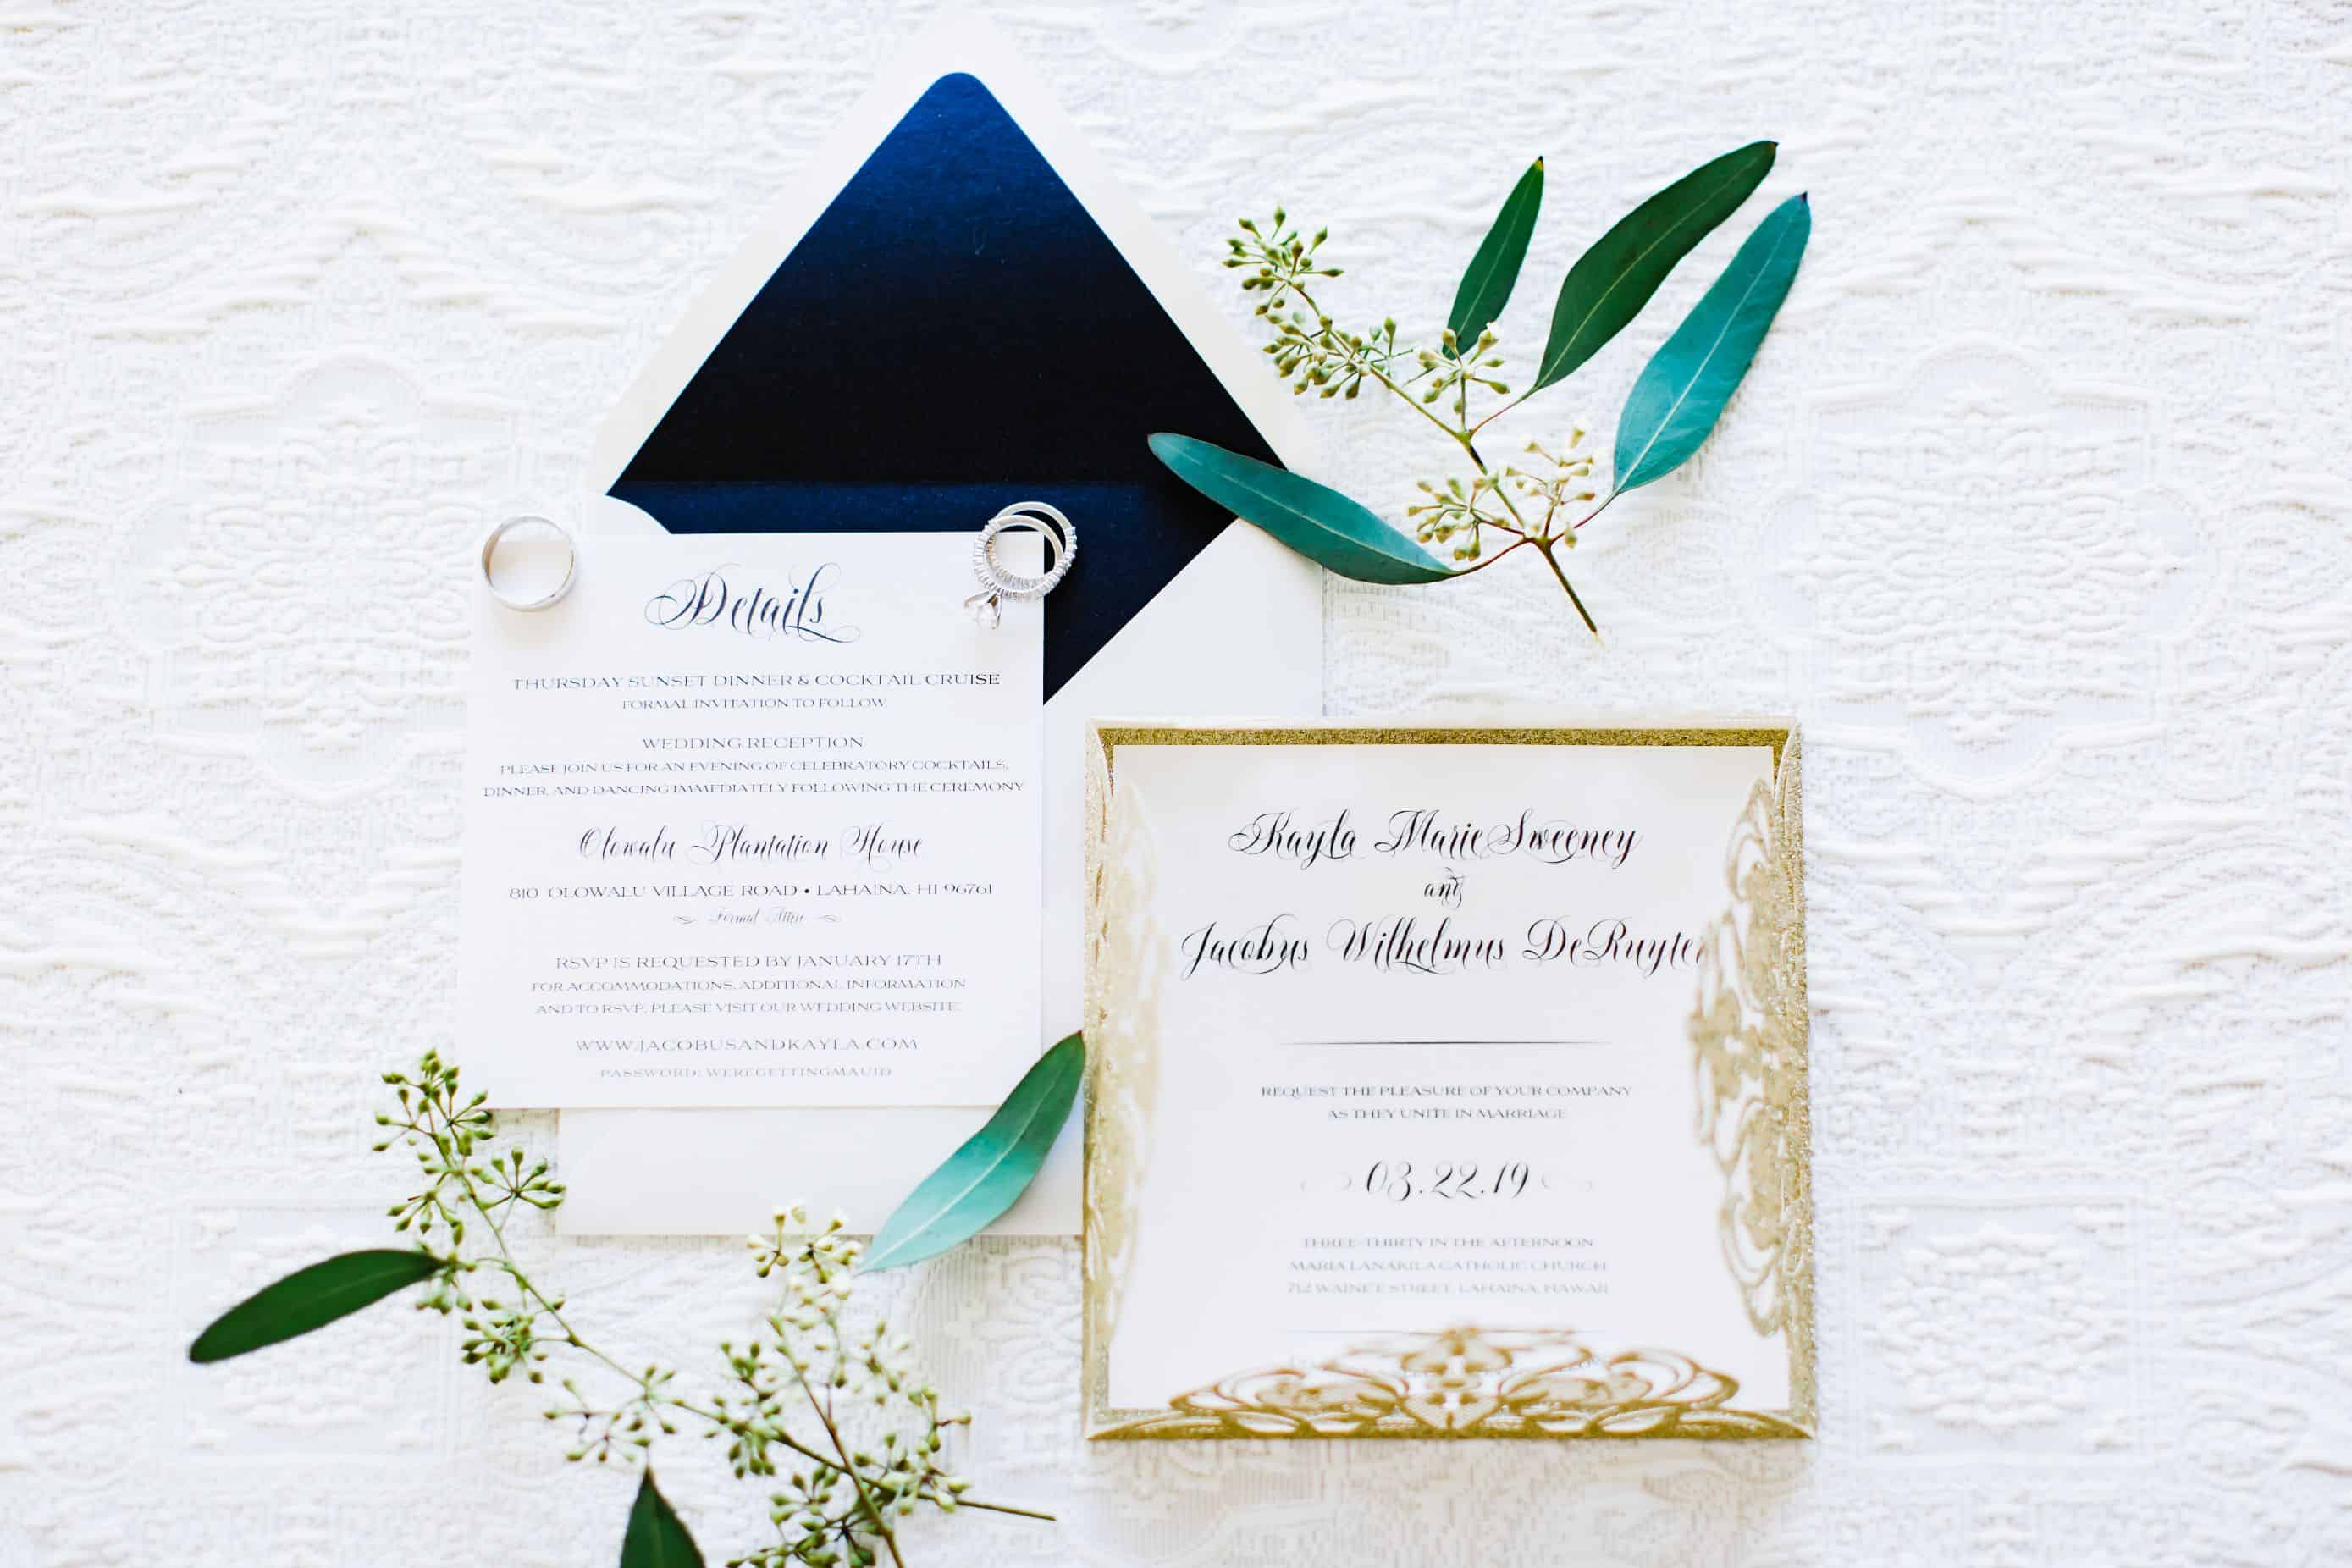 Custom Destination Wedding Invitation | Maui's Angels